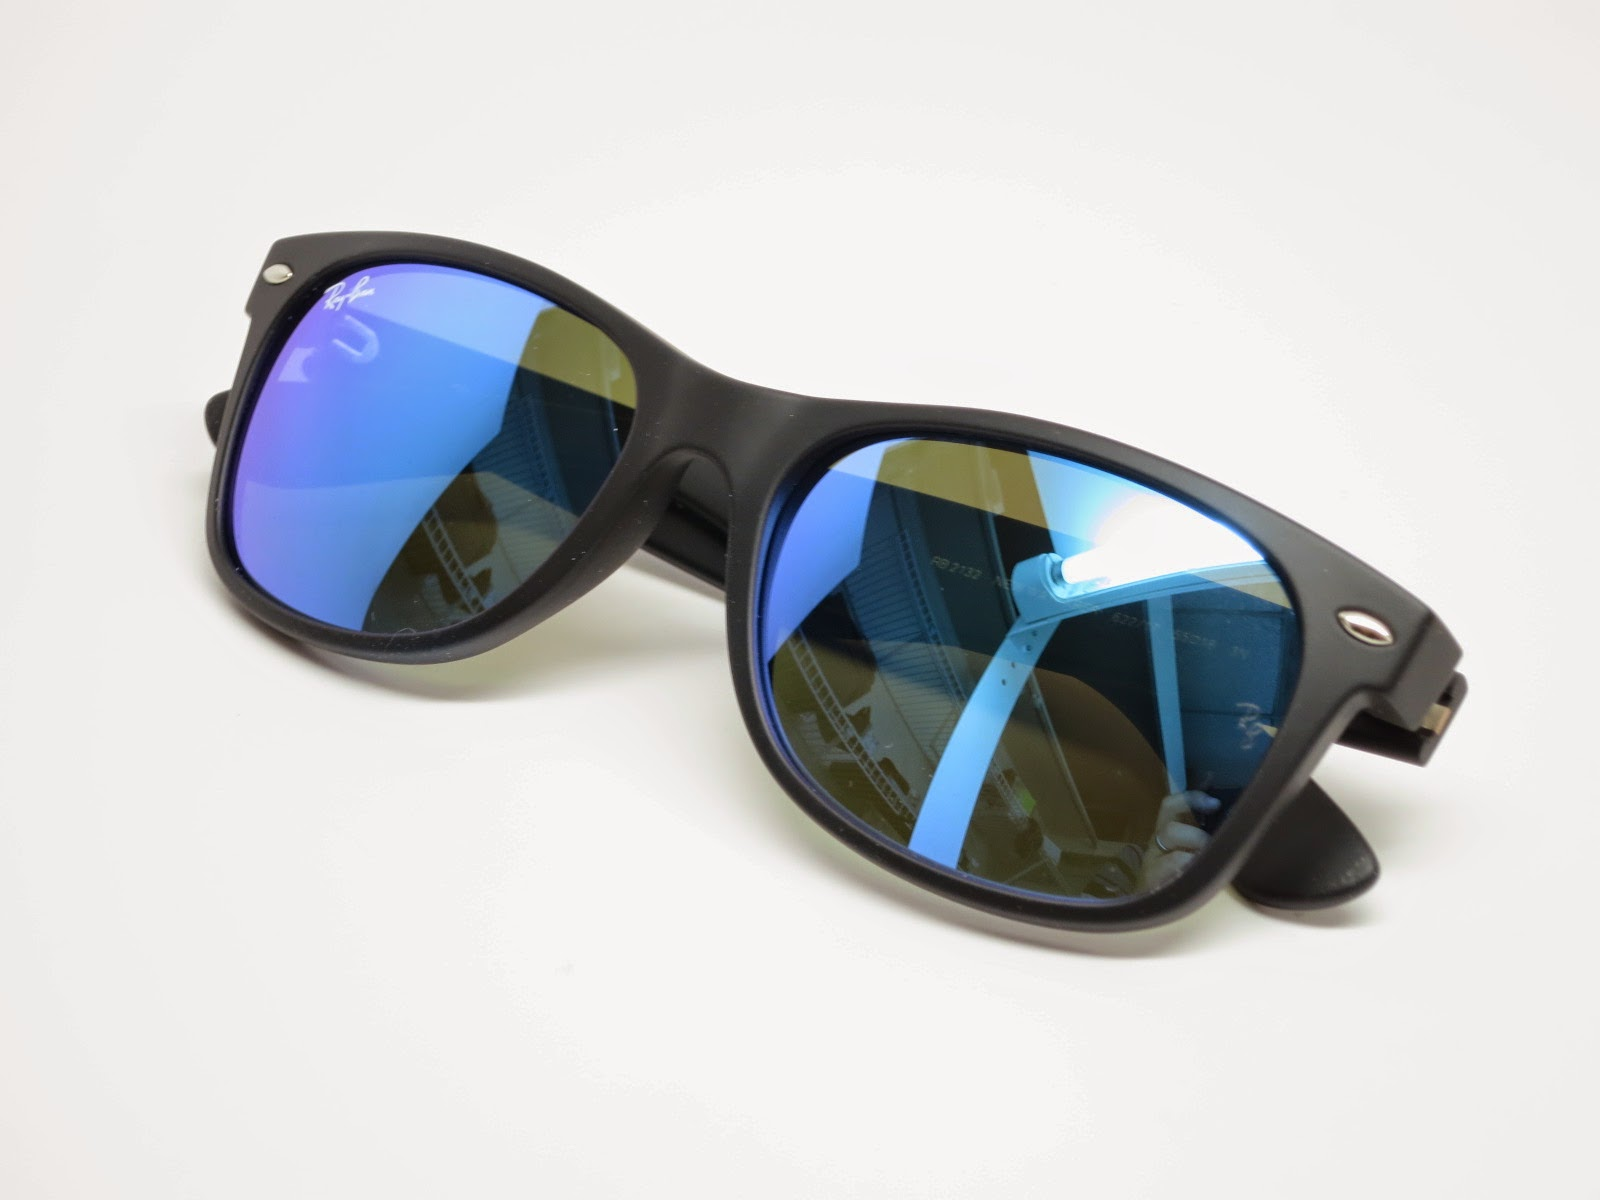 5cdee10edc5 Ray-Ban RB 2132 New Wayfarer 622 17 Blue Mirrored Sunglasses